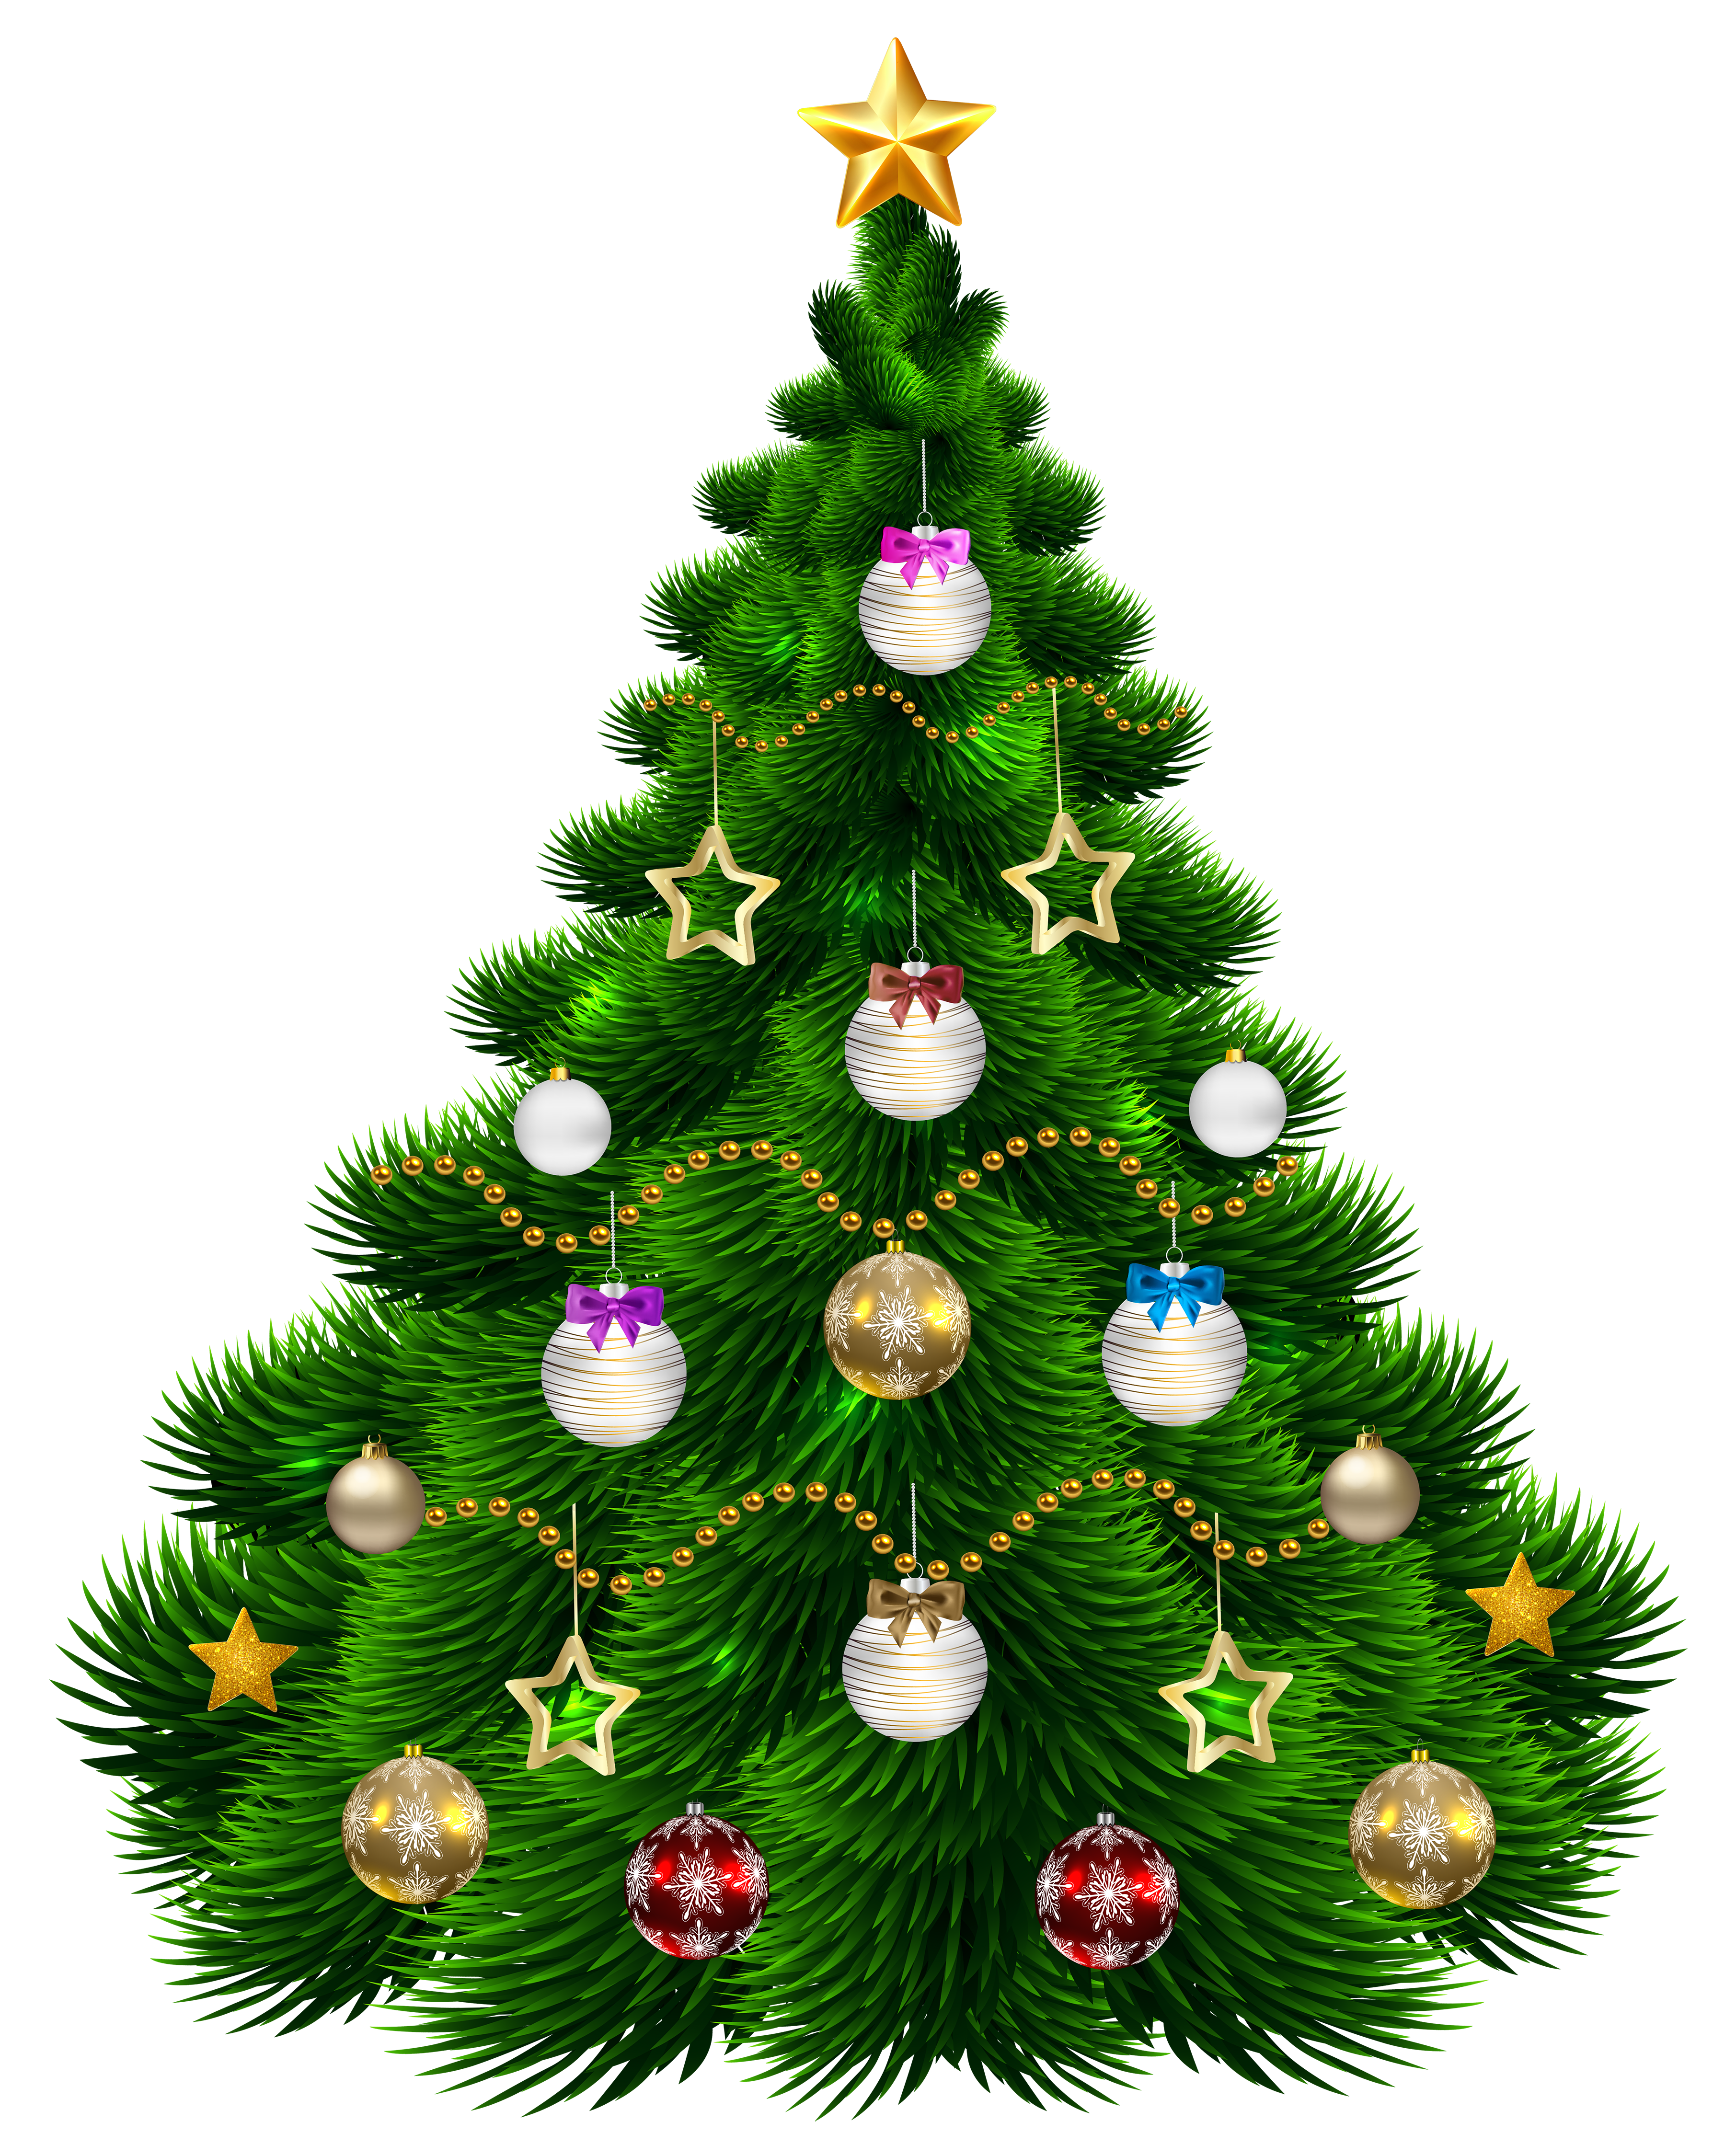 Christmas Tree Png Free Christmas Tree Png Transparent Images